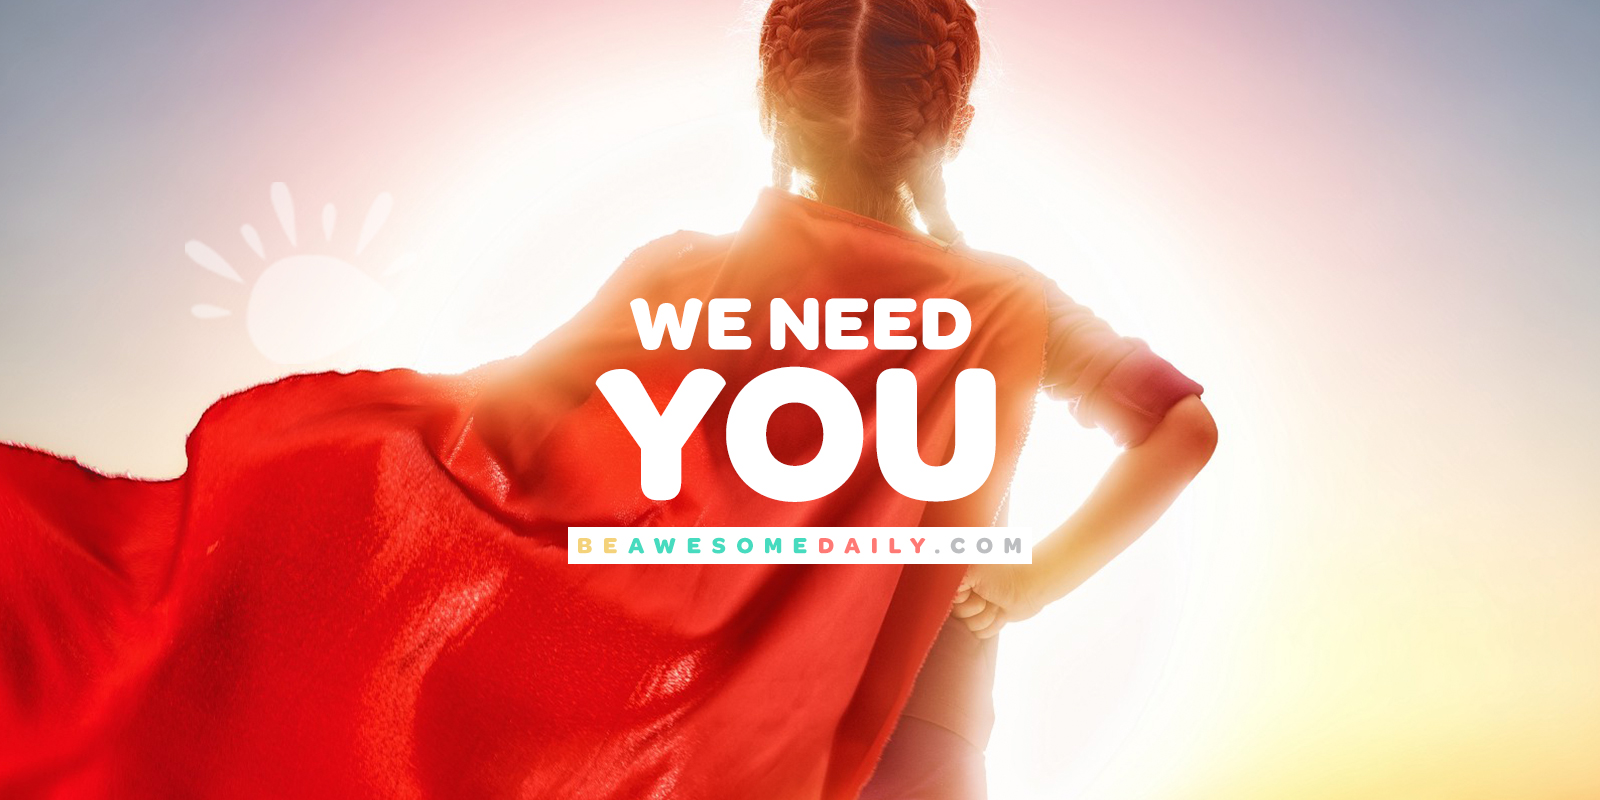 Be Awesome Daily - We Need You